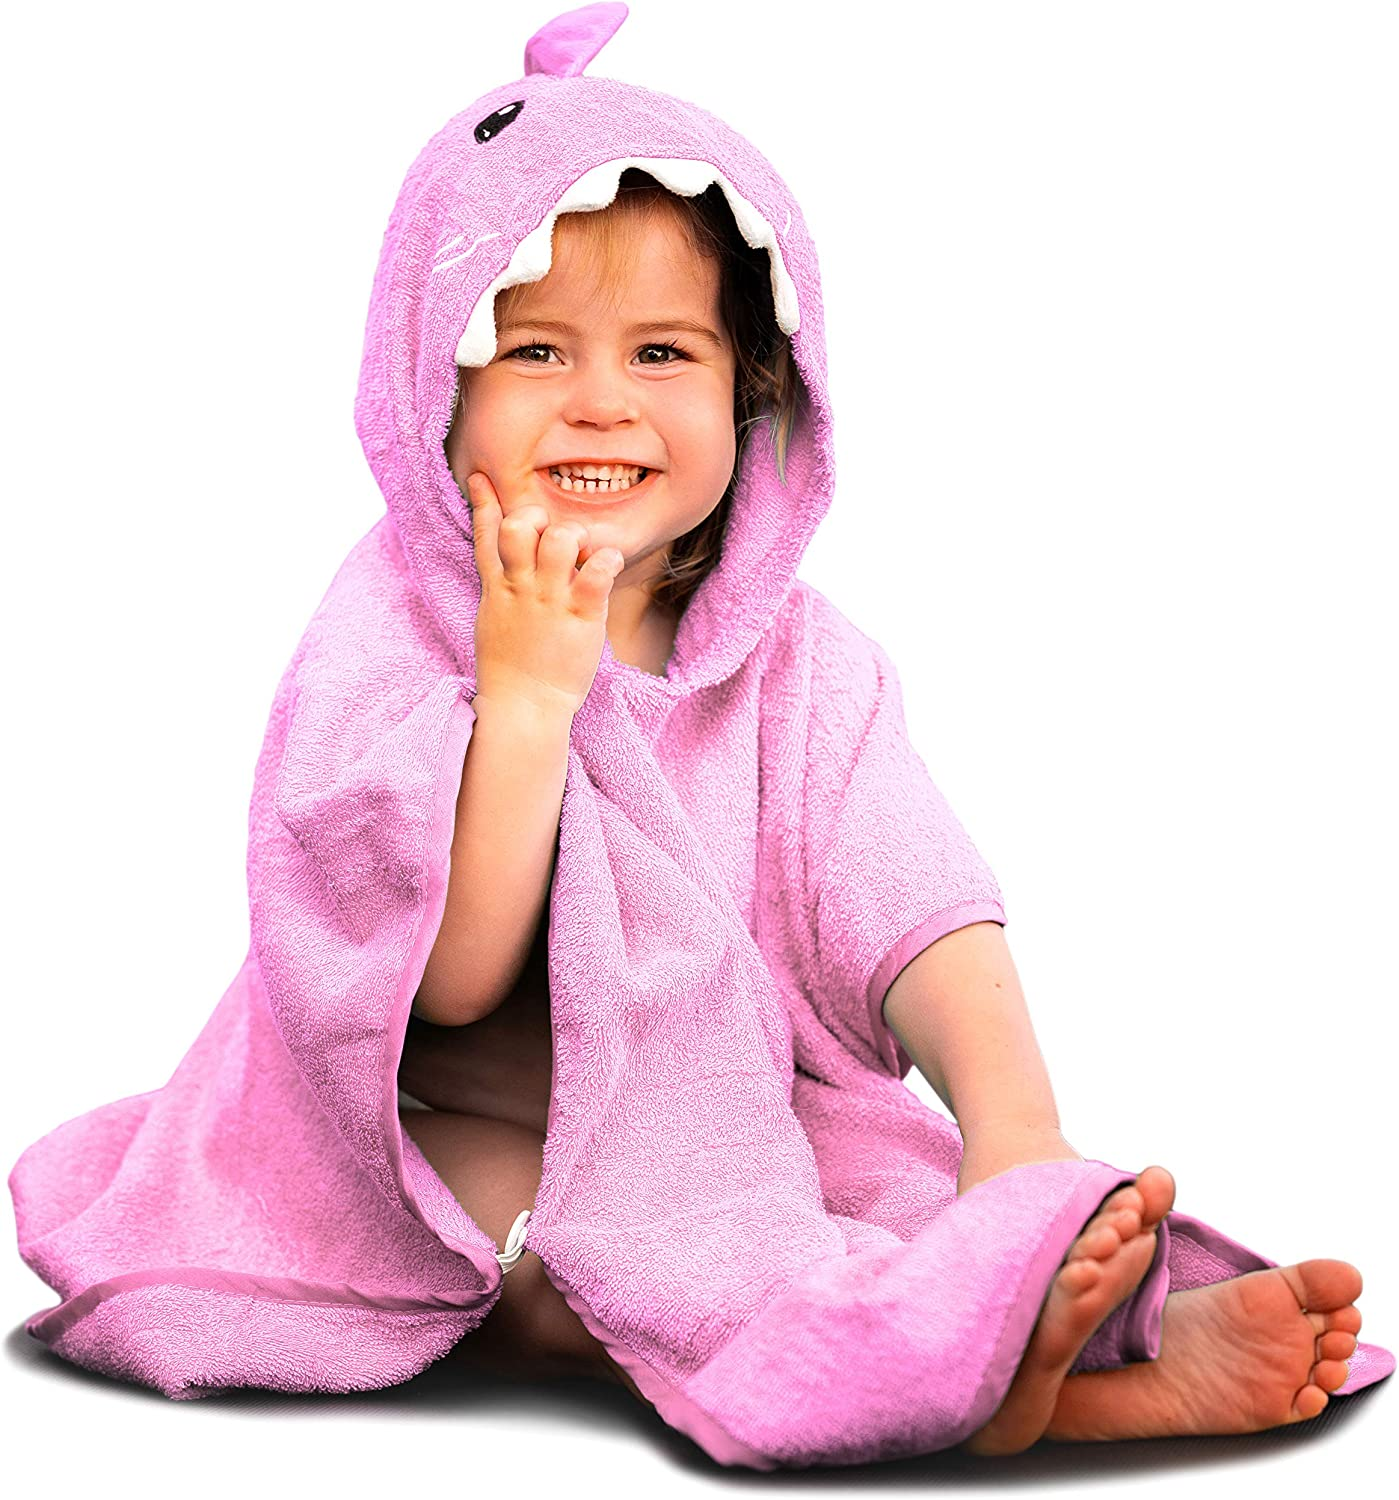 Hudz Kidz Premium Hooded Towel Poncho for Kids & Toddlers, Soft 100% Cotton, Ideal at Bath, Beach, Pool (Pink Shark)